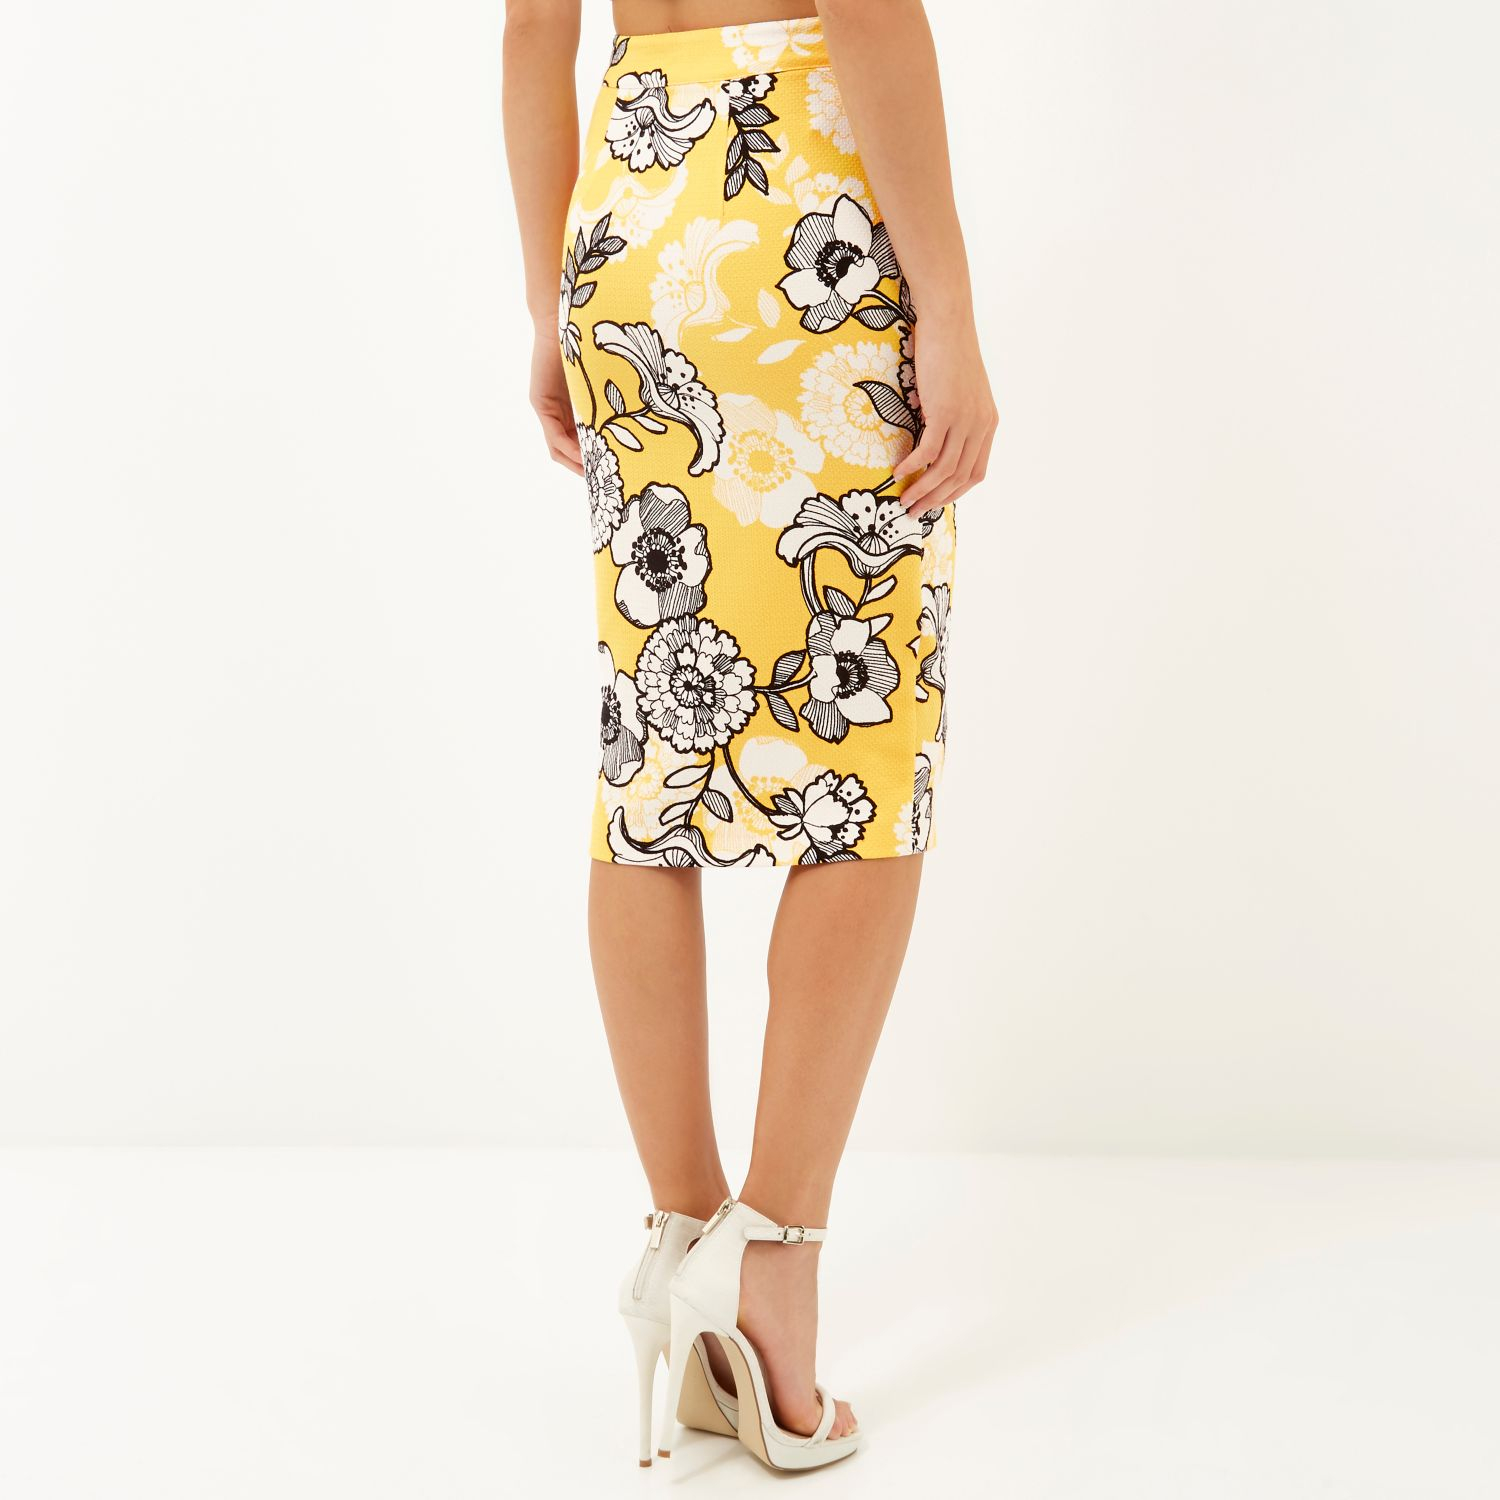 25ec0de9f1 River Island Yellow Floral Print Front Zip Pencil Skirt in Yellow - Lyst